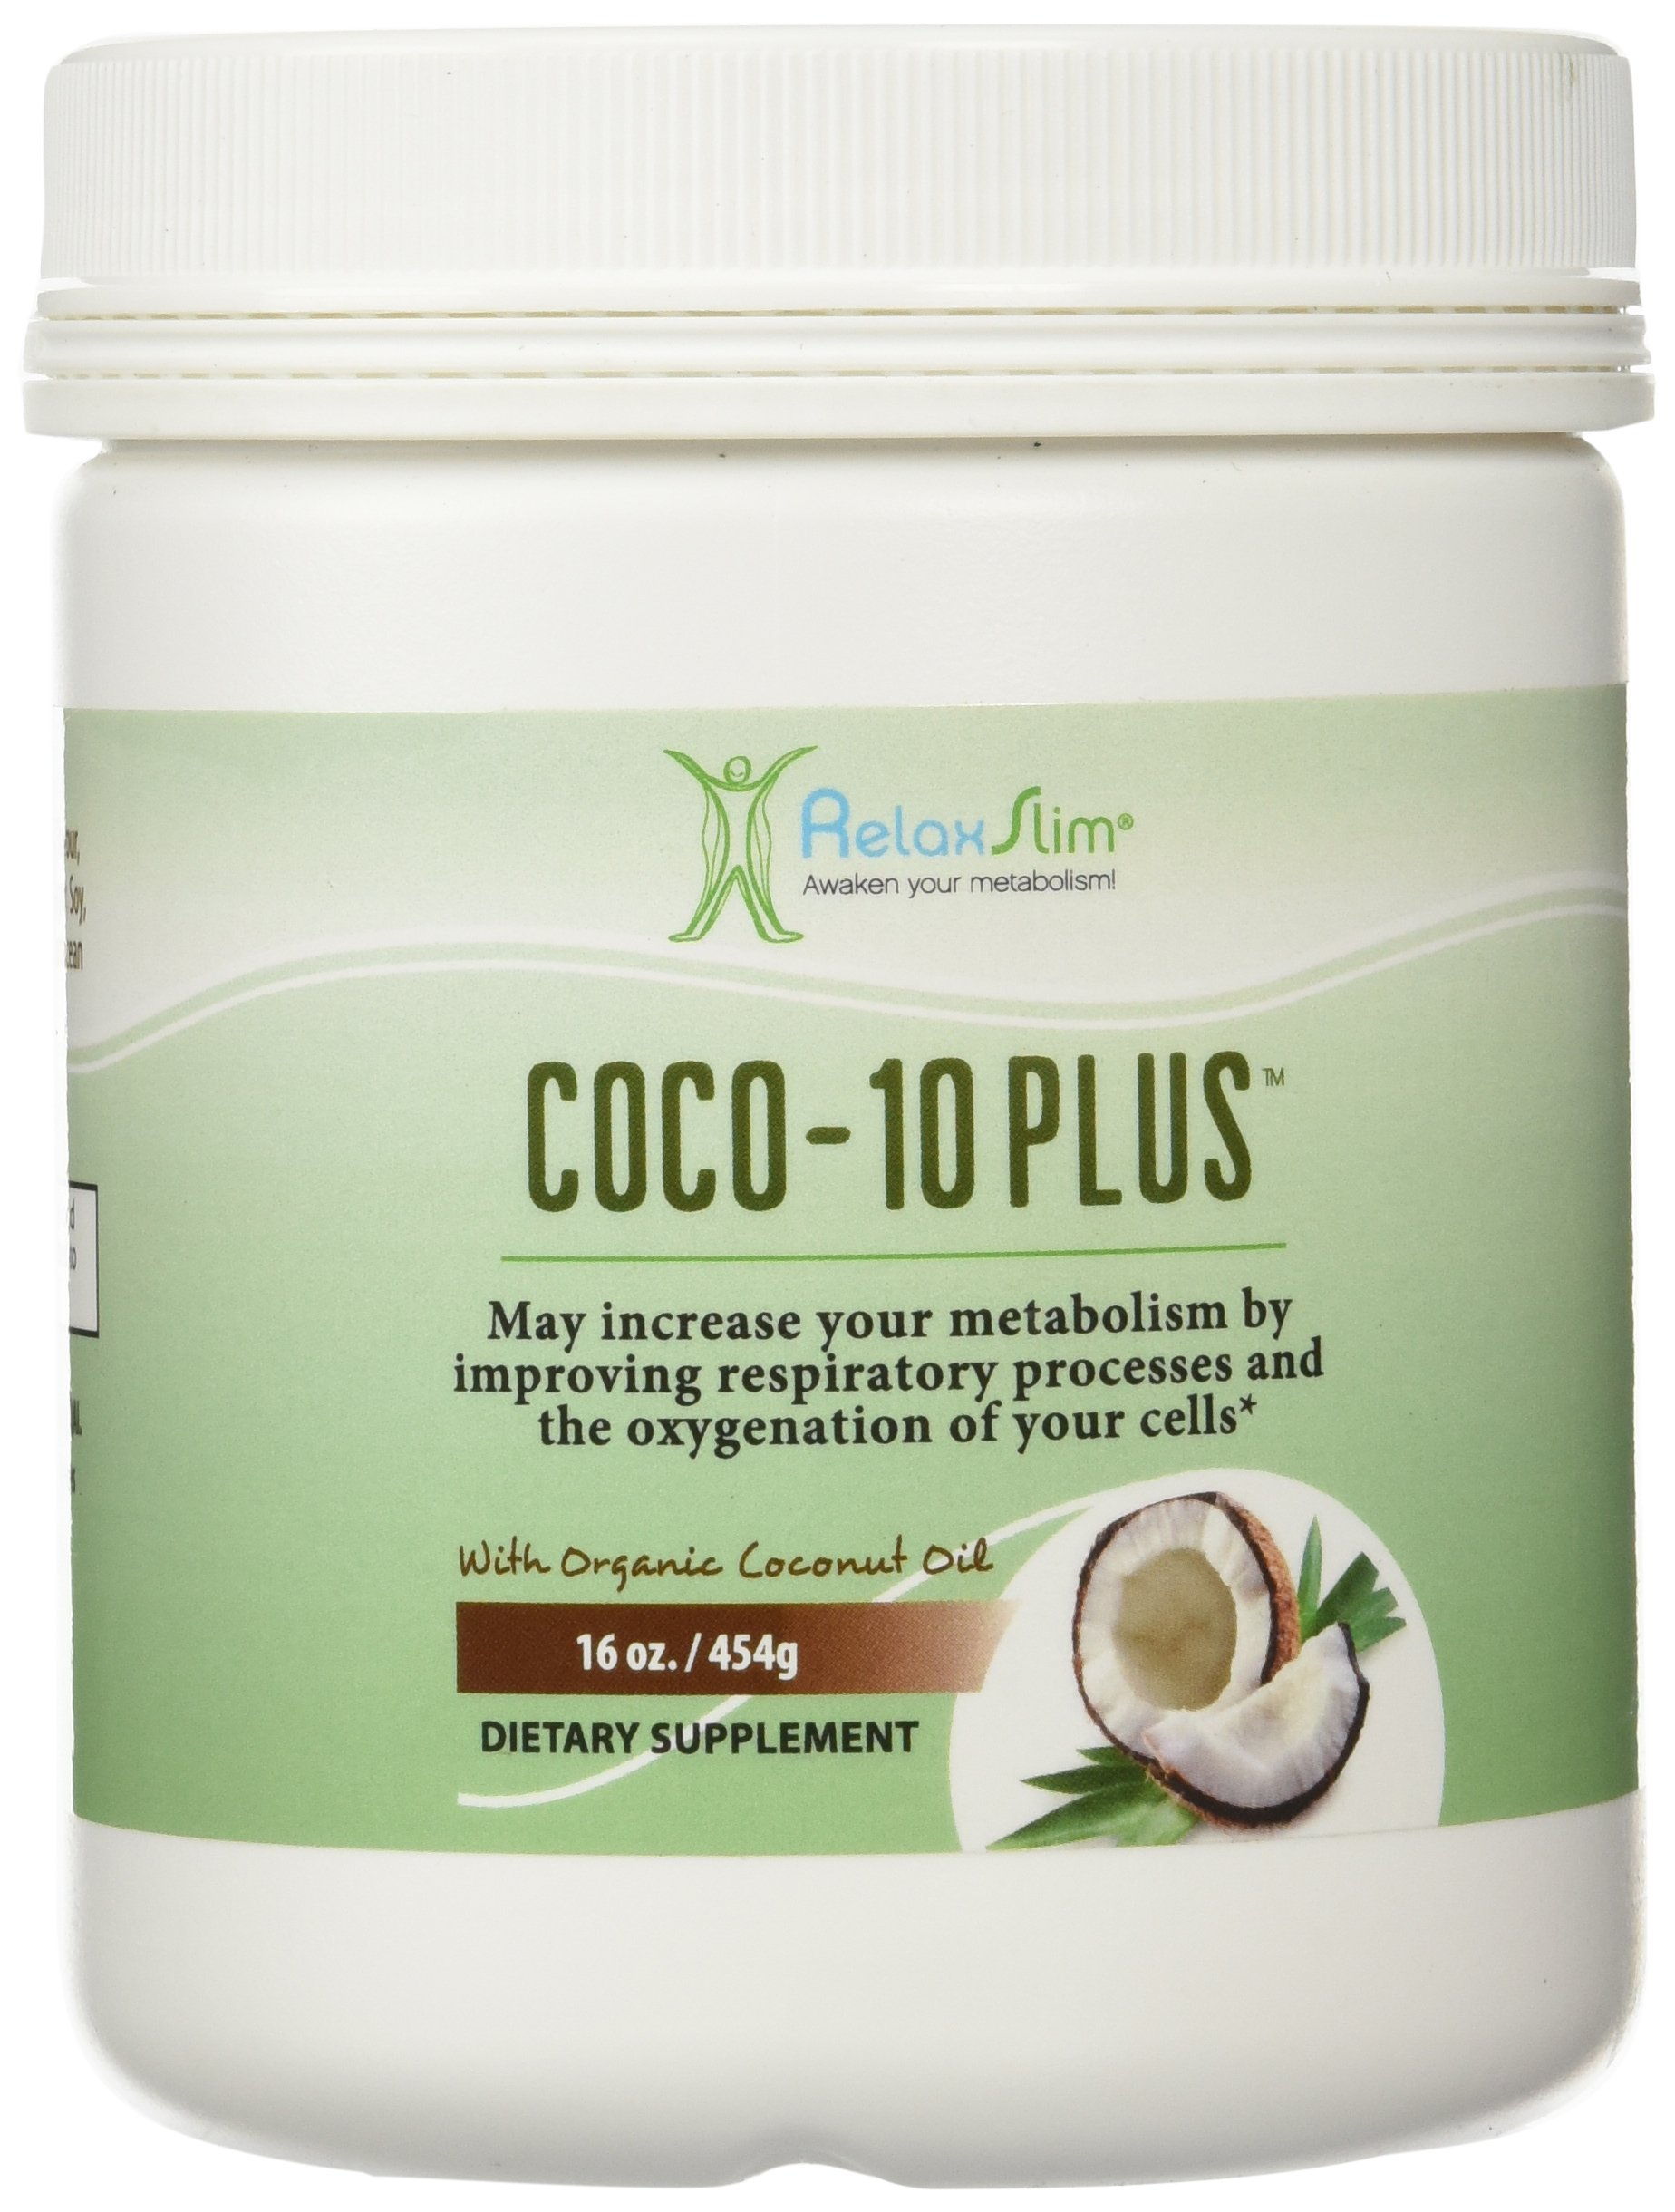 NaturalSlim''Super'' Organic Coconut Oil with CoQ10, Formulated by Obesity and Metabolism Specialist to Improve Energy Levels and Assist with Weight Loss - Natural Fat Burner to Any Diet Attempt 16 Oz by RelaxSlim  (Image #2)